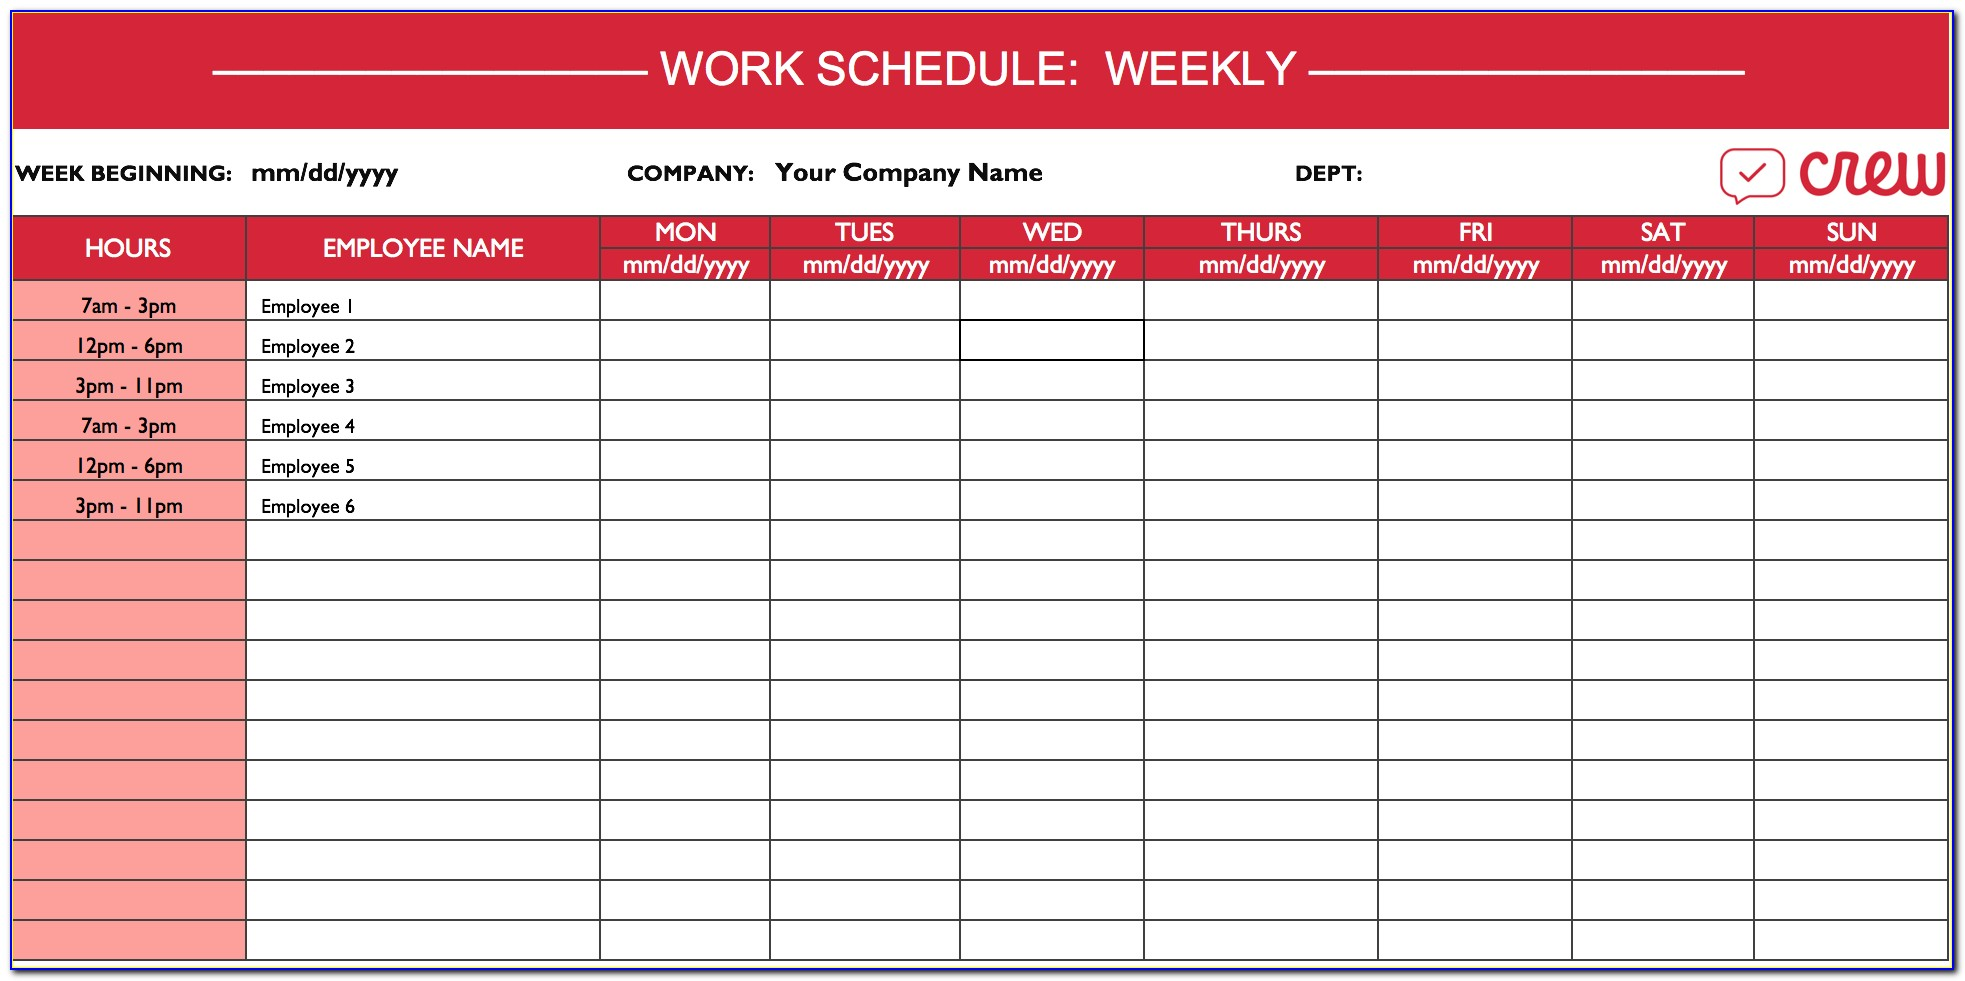 Weekly Employee Work Schedule Template